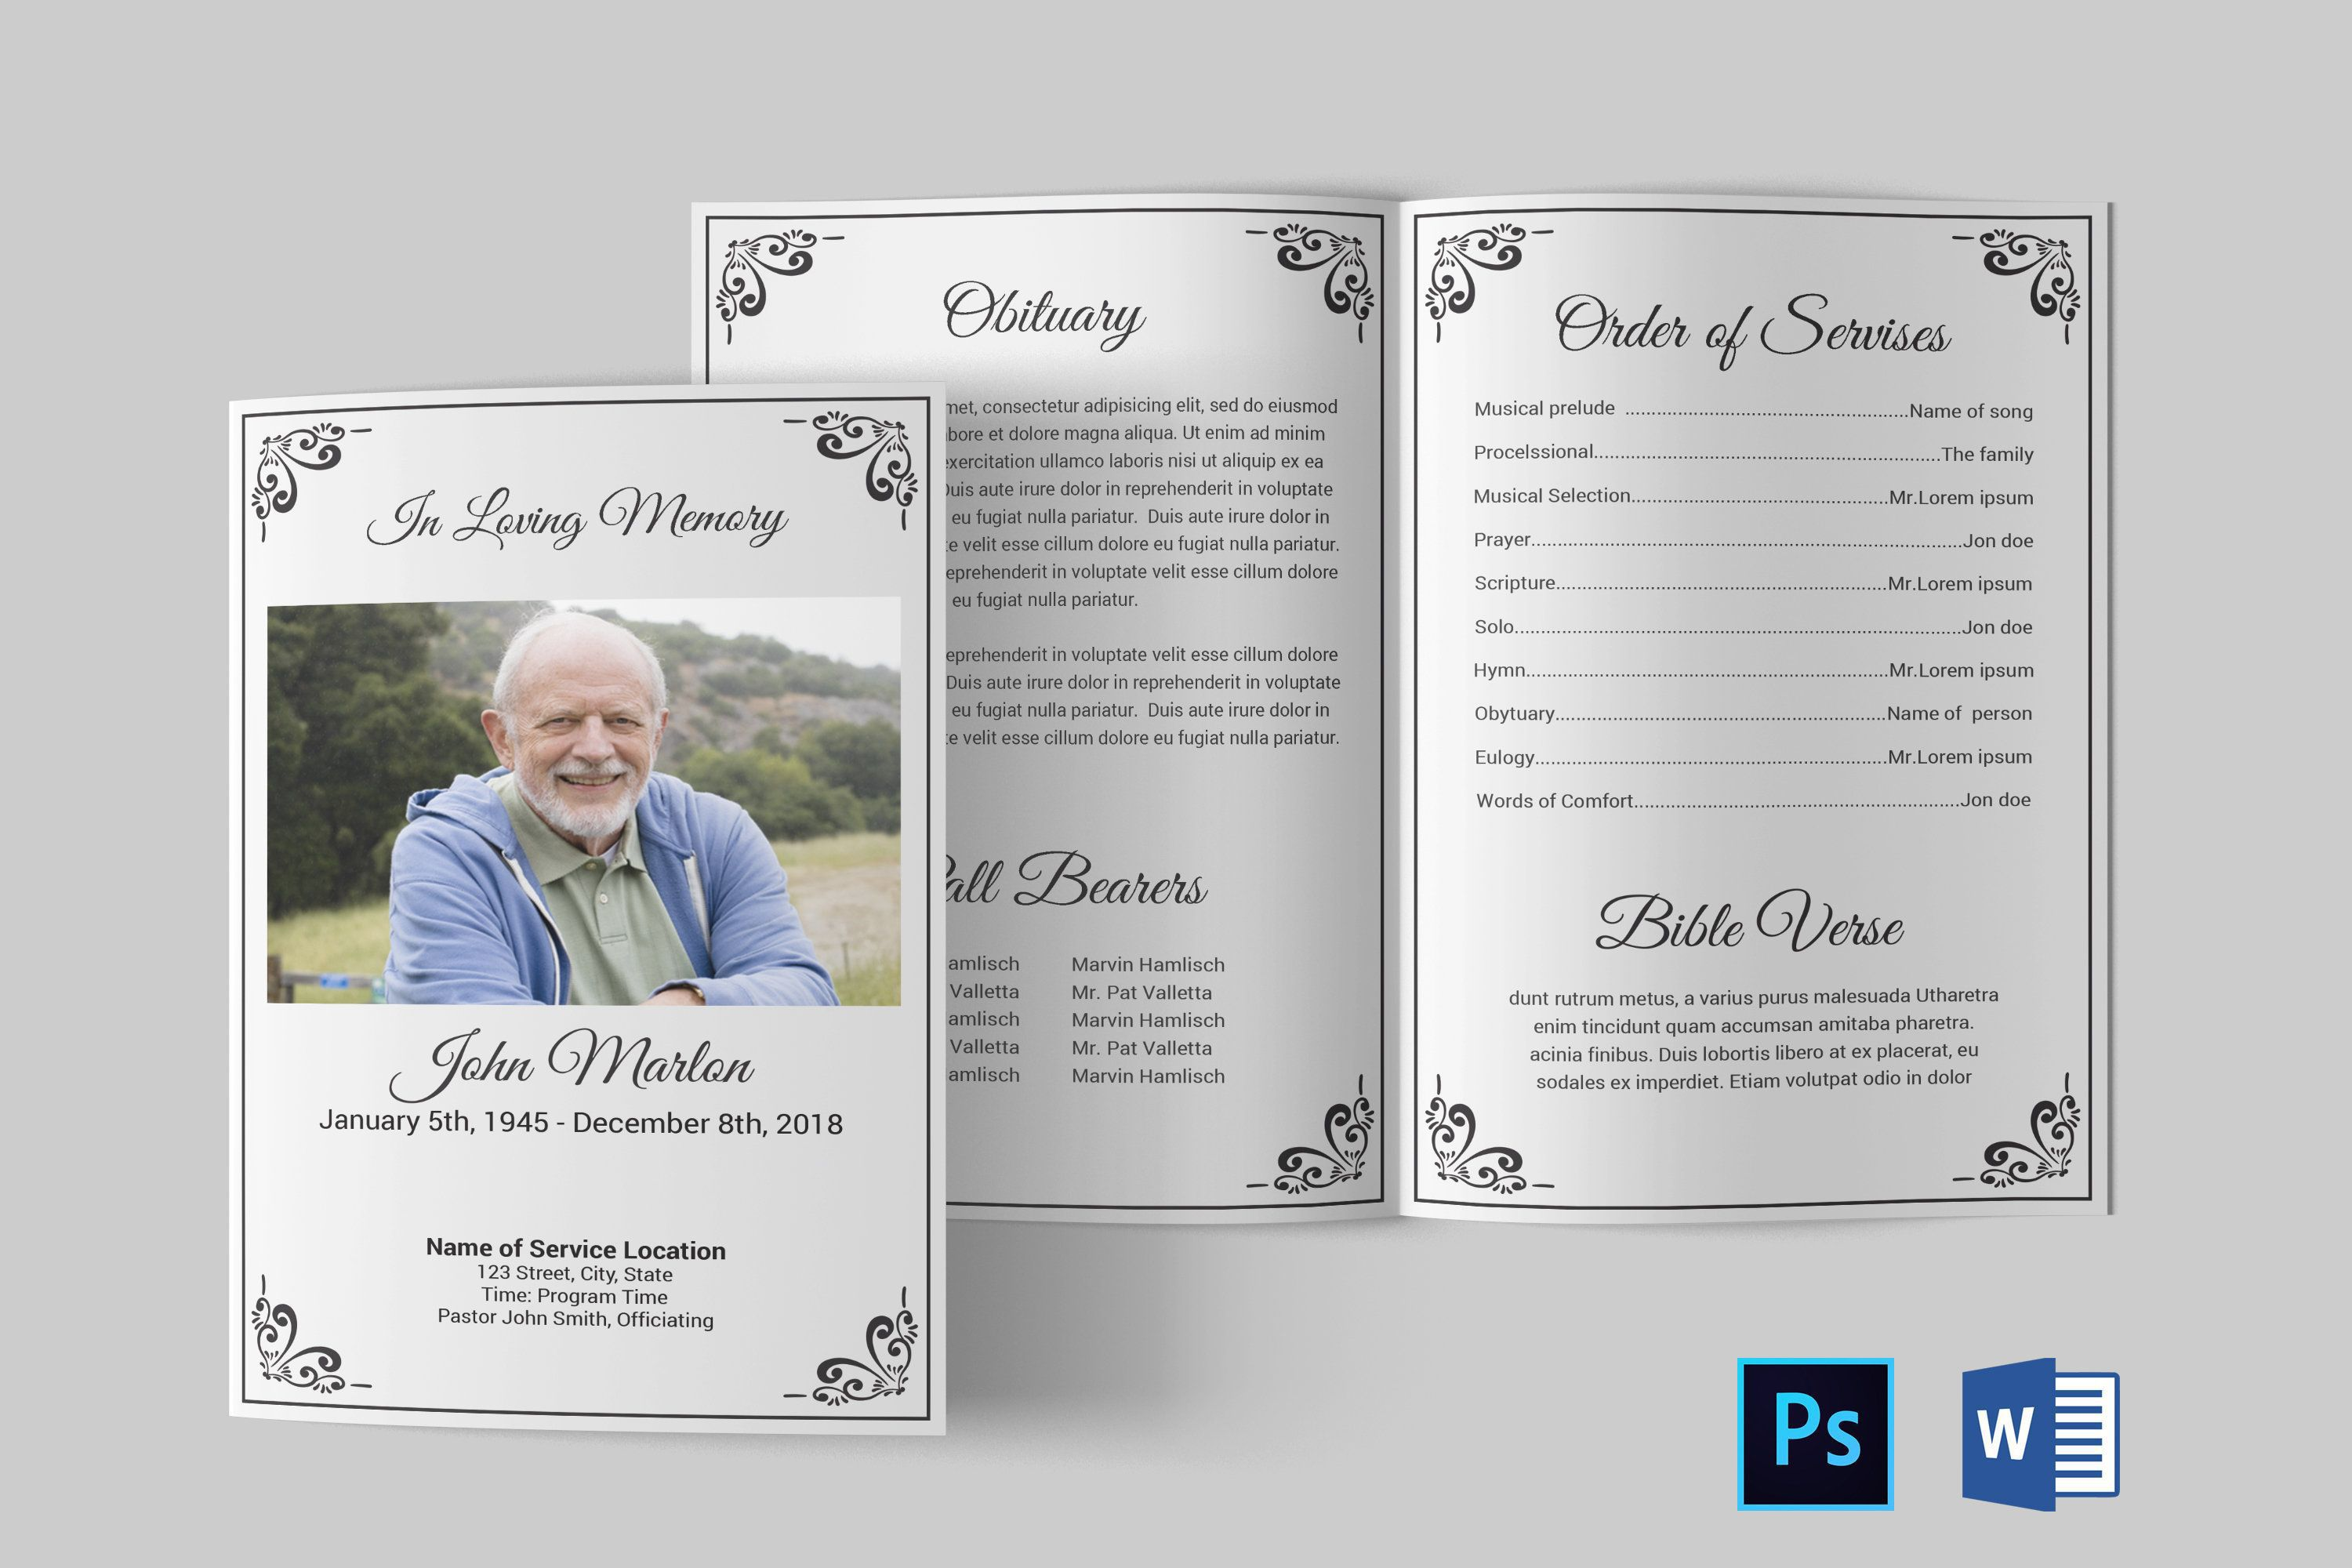 002 Stupendou Template For Funeral Program Free Image  Printable Download On Word Editable PdfFull